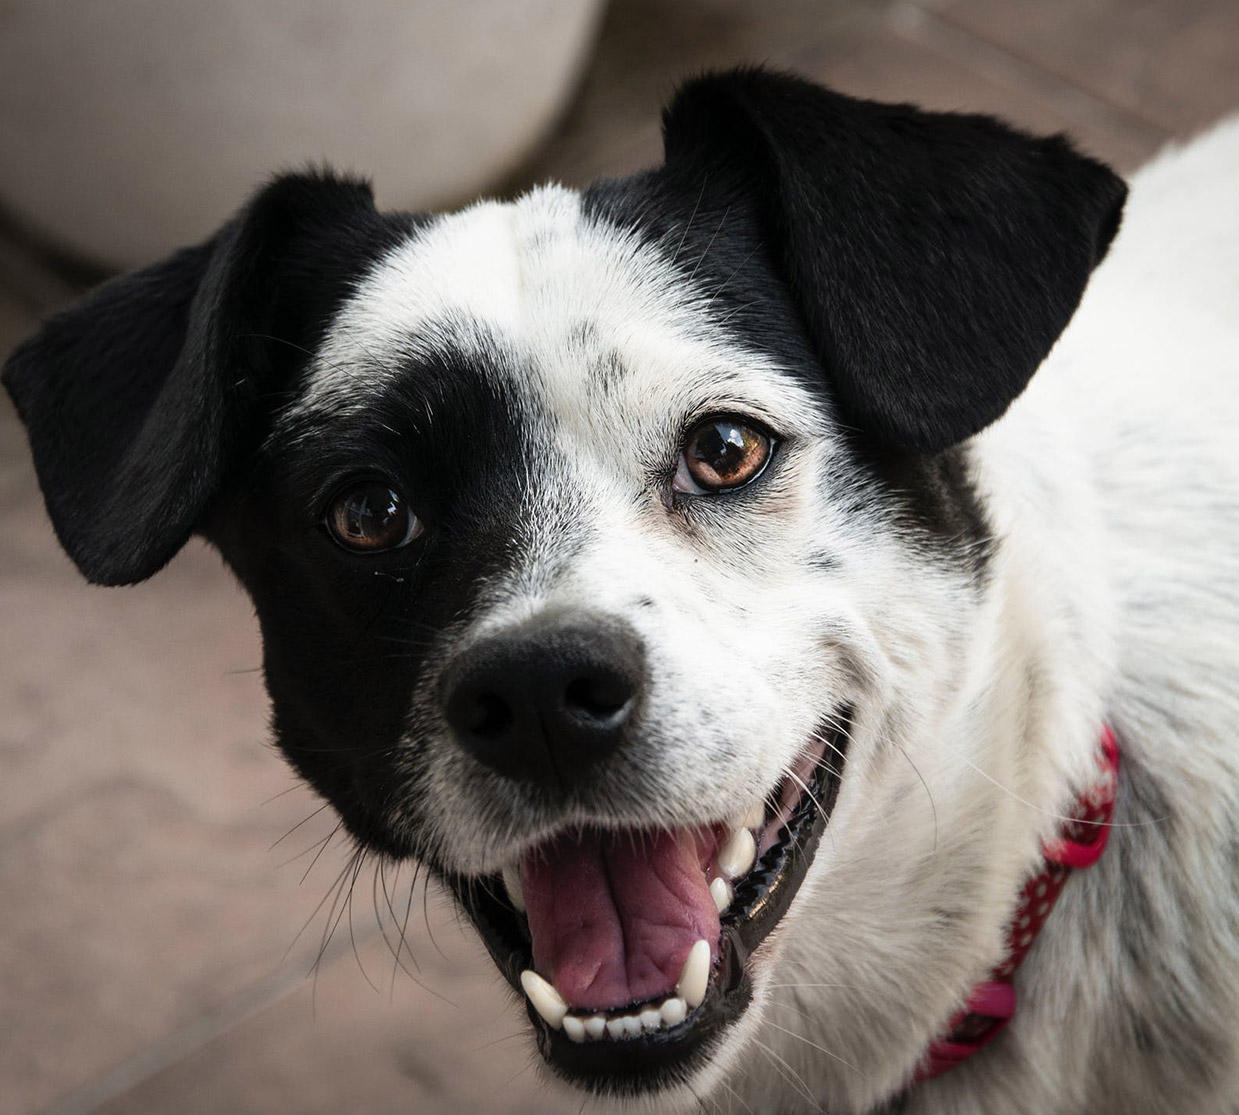 Zymox Otic With Hydrocortisone For Dogs